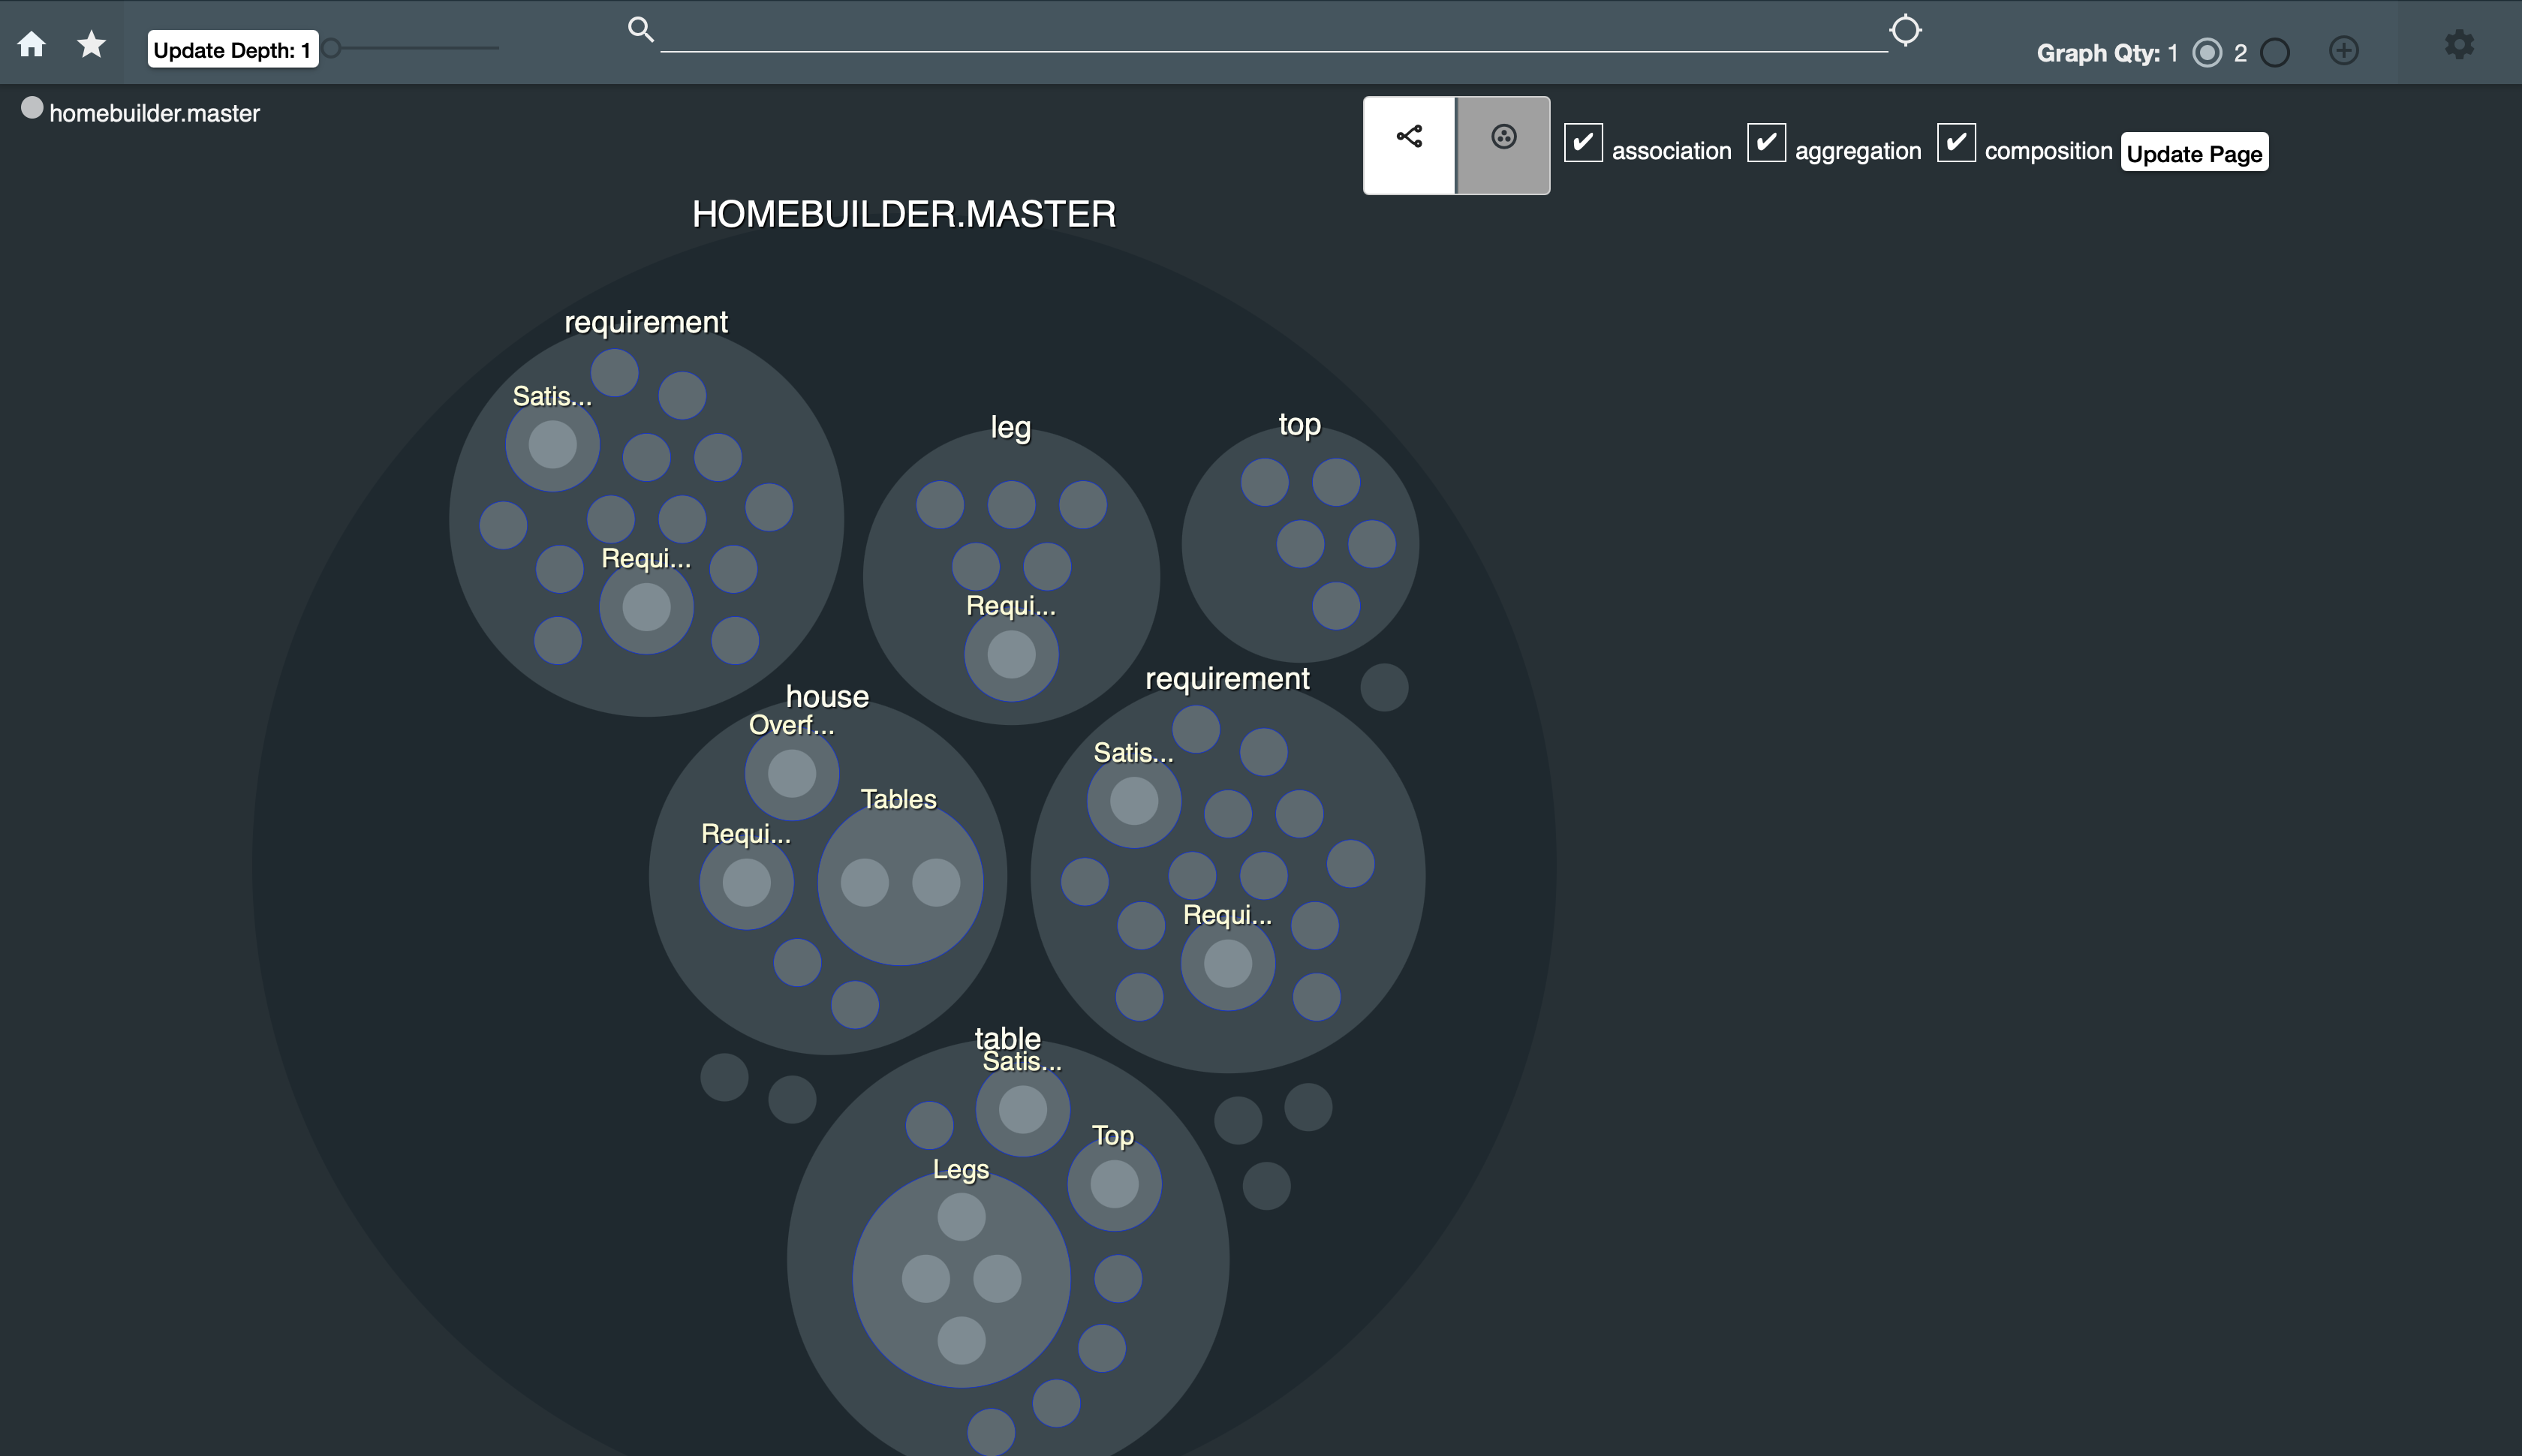 Screenshot of SBE Vision users interface showing a more detailed version of the circular ontological view: One large circle with 6 large circles inside, with smaller circles inside them.